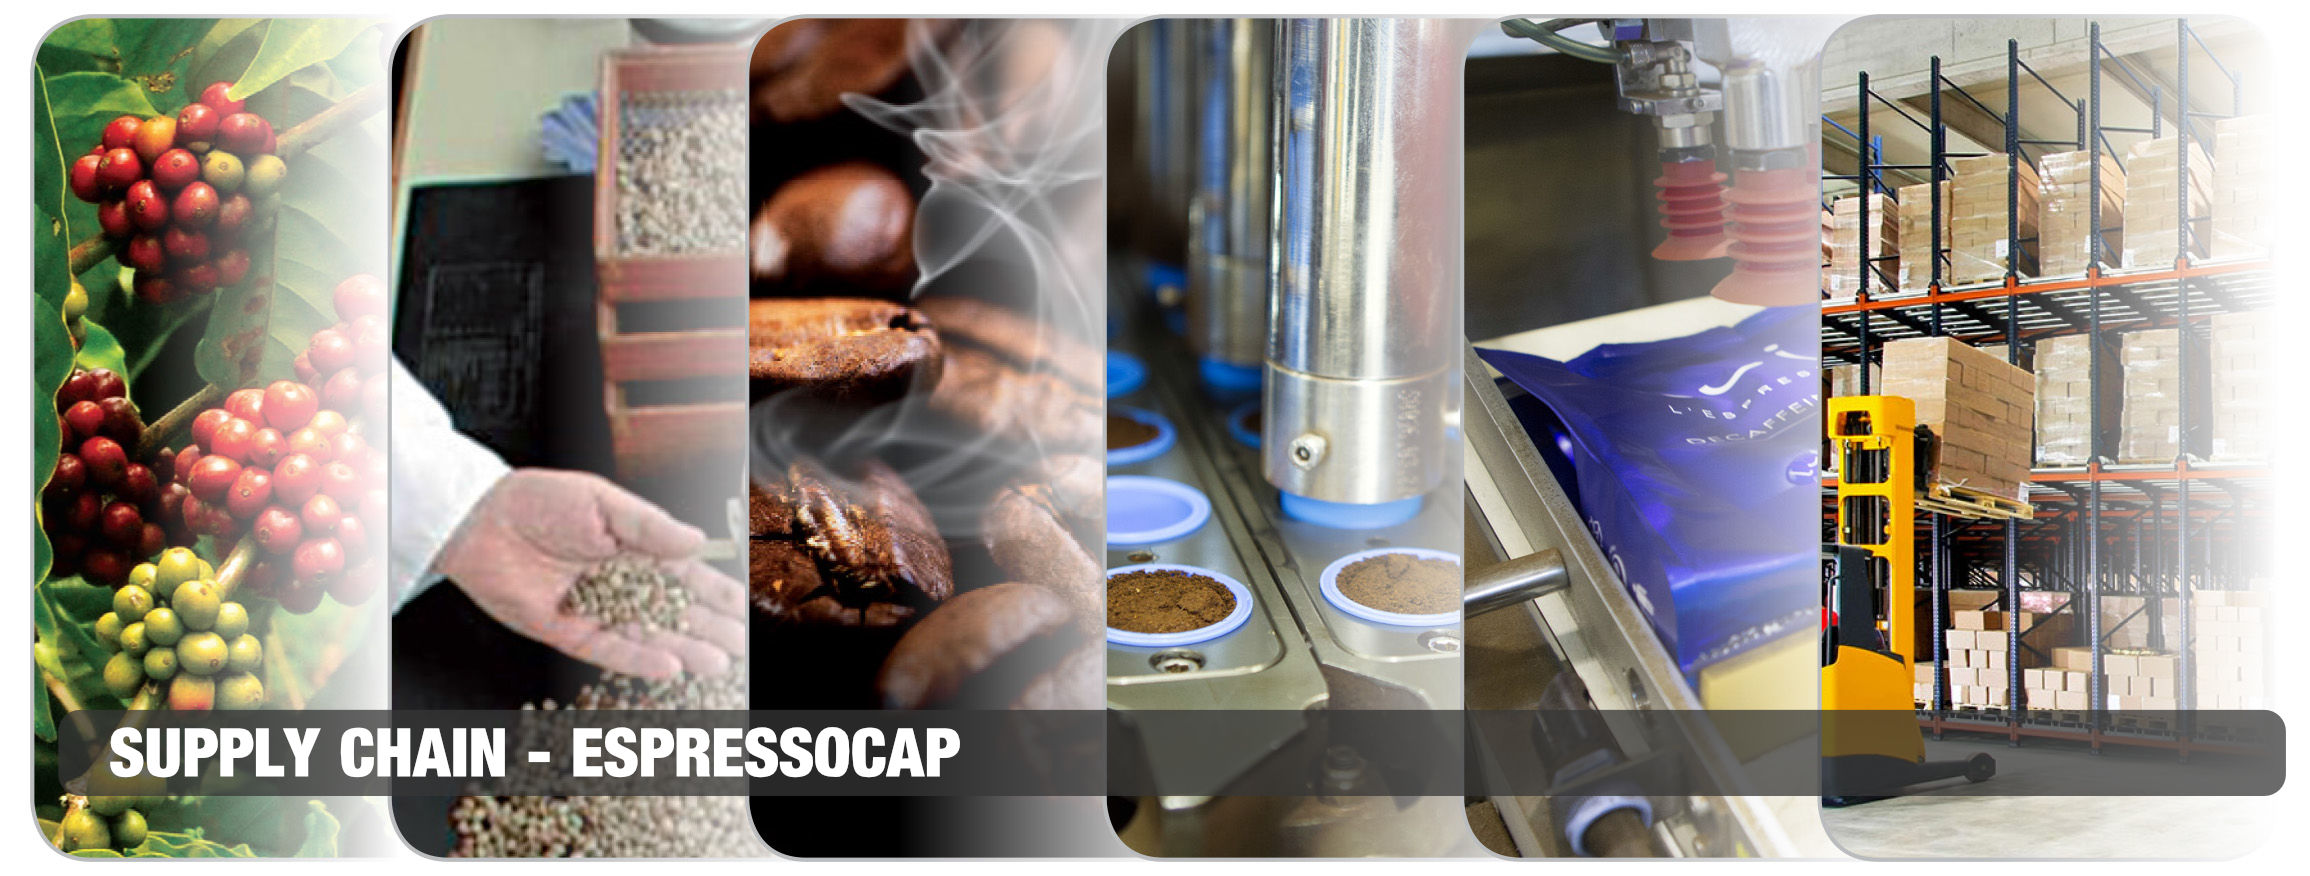 Supply Chain – EspressoCap